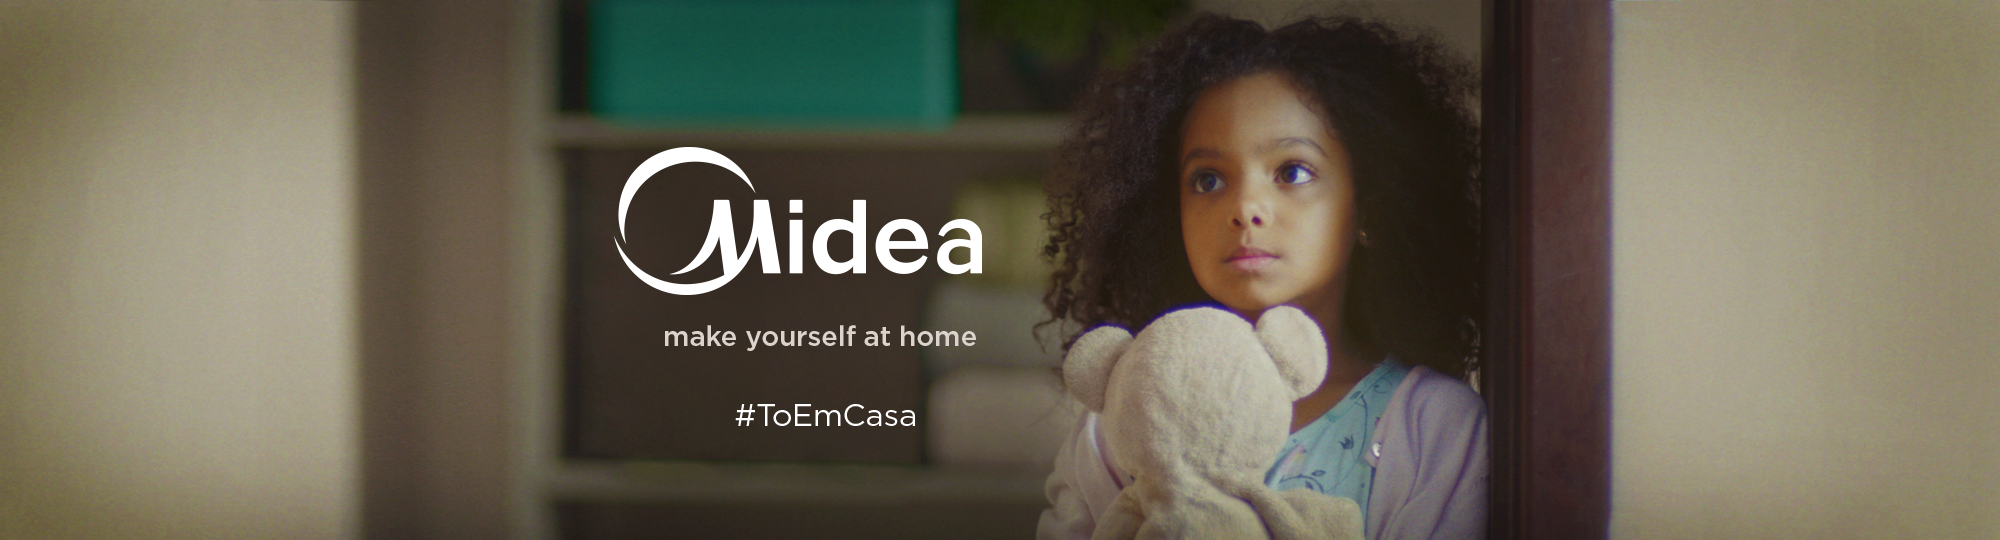 Campanha Make Yourself at Home